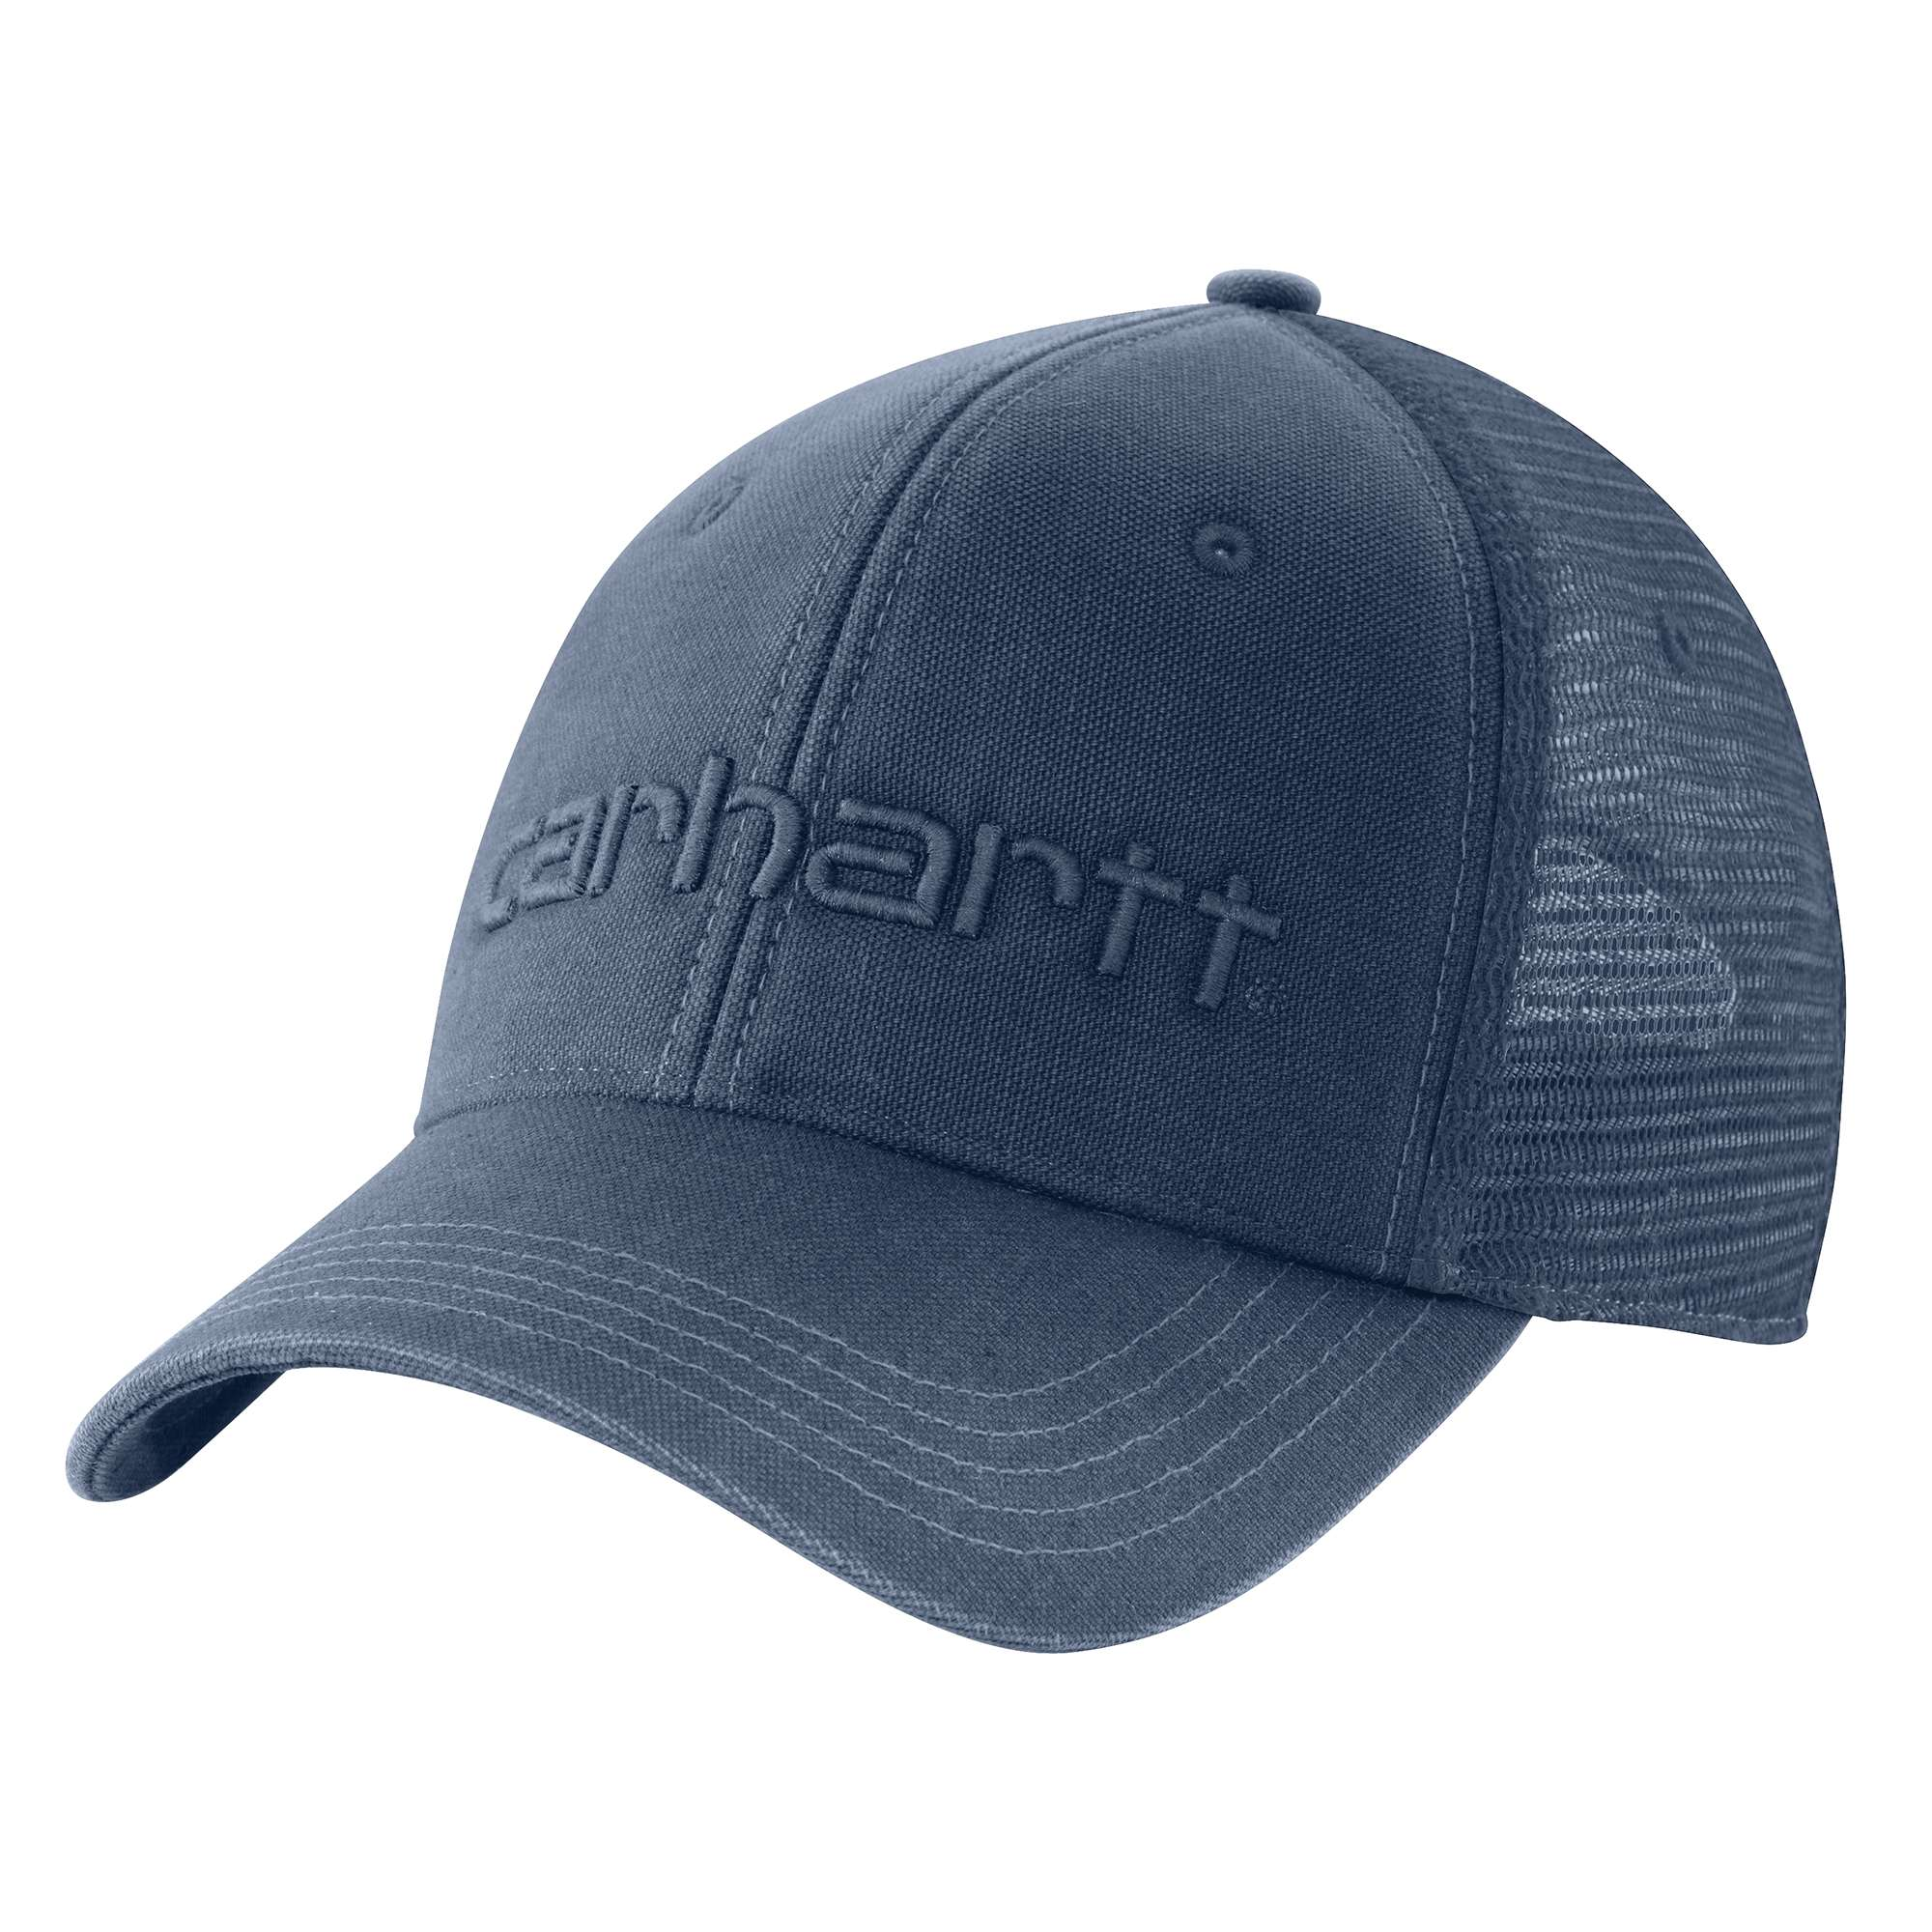 Dunmore Cap, Dark Blue, Midnight, swatch